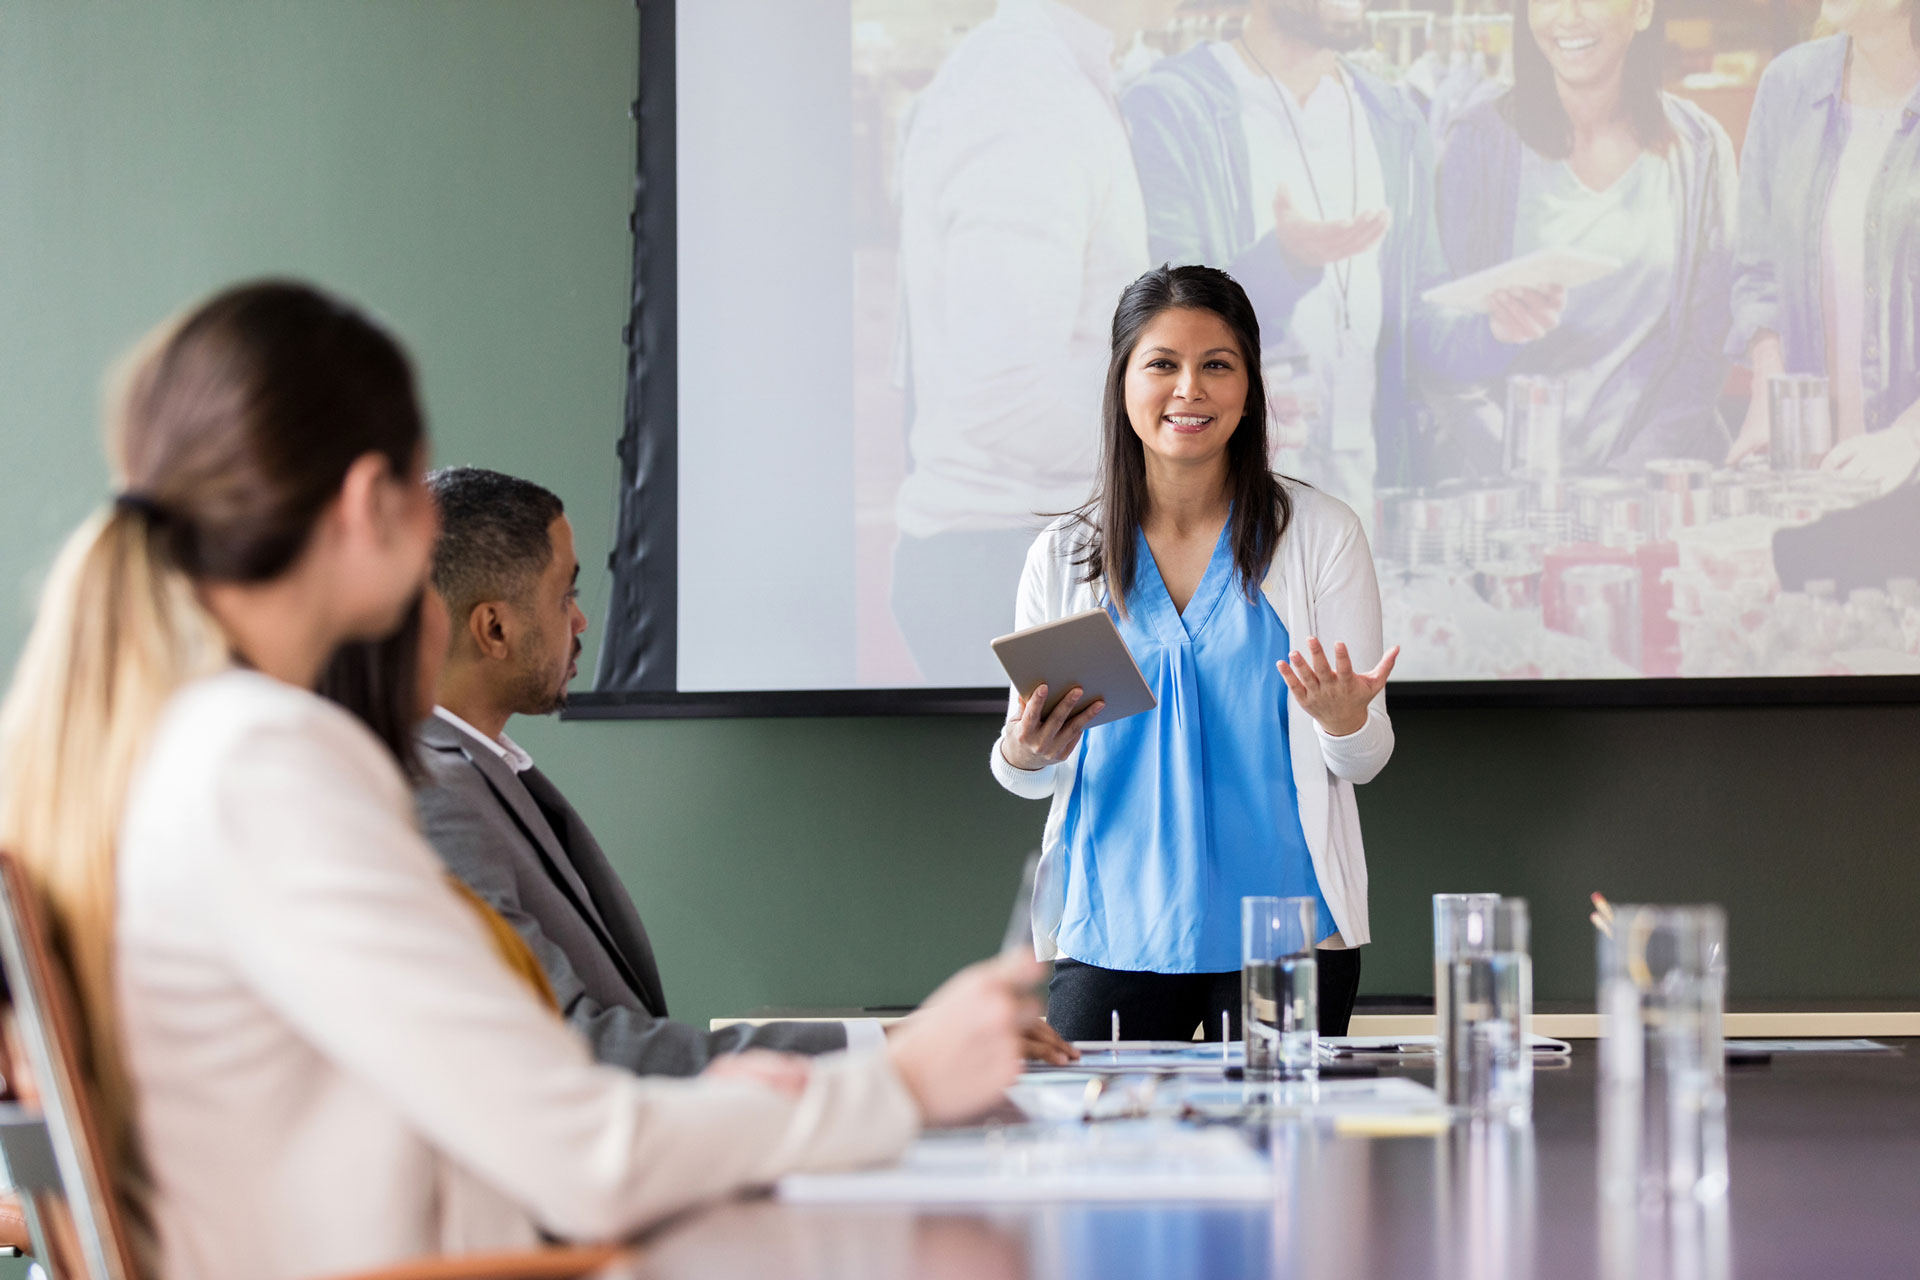 How Public Speaking Skills Help a Business